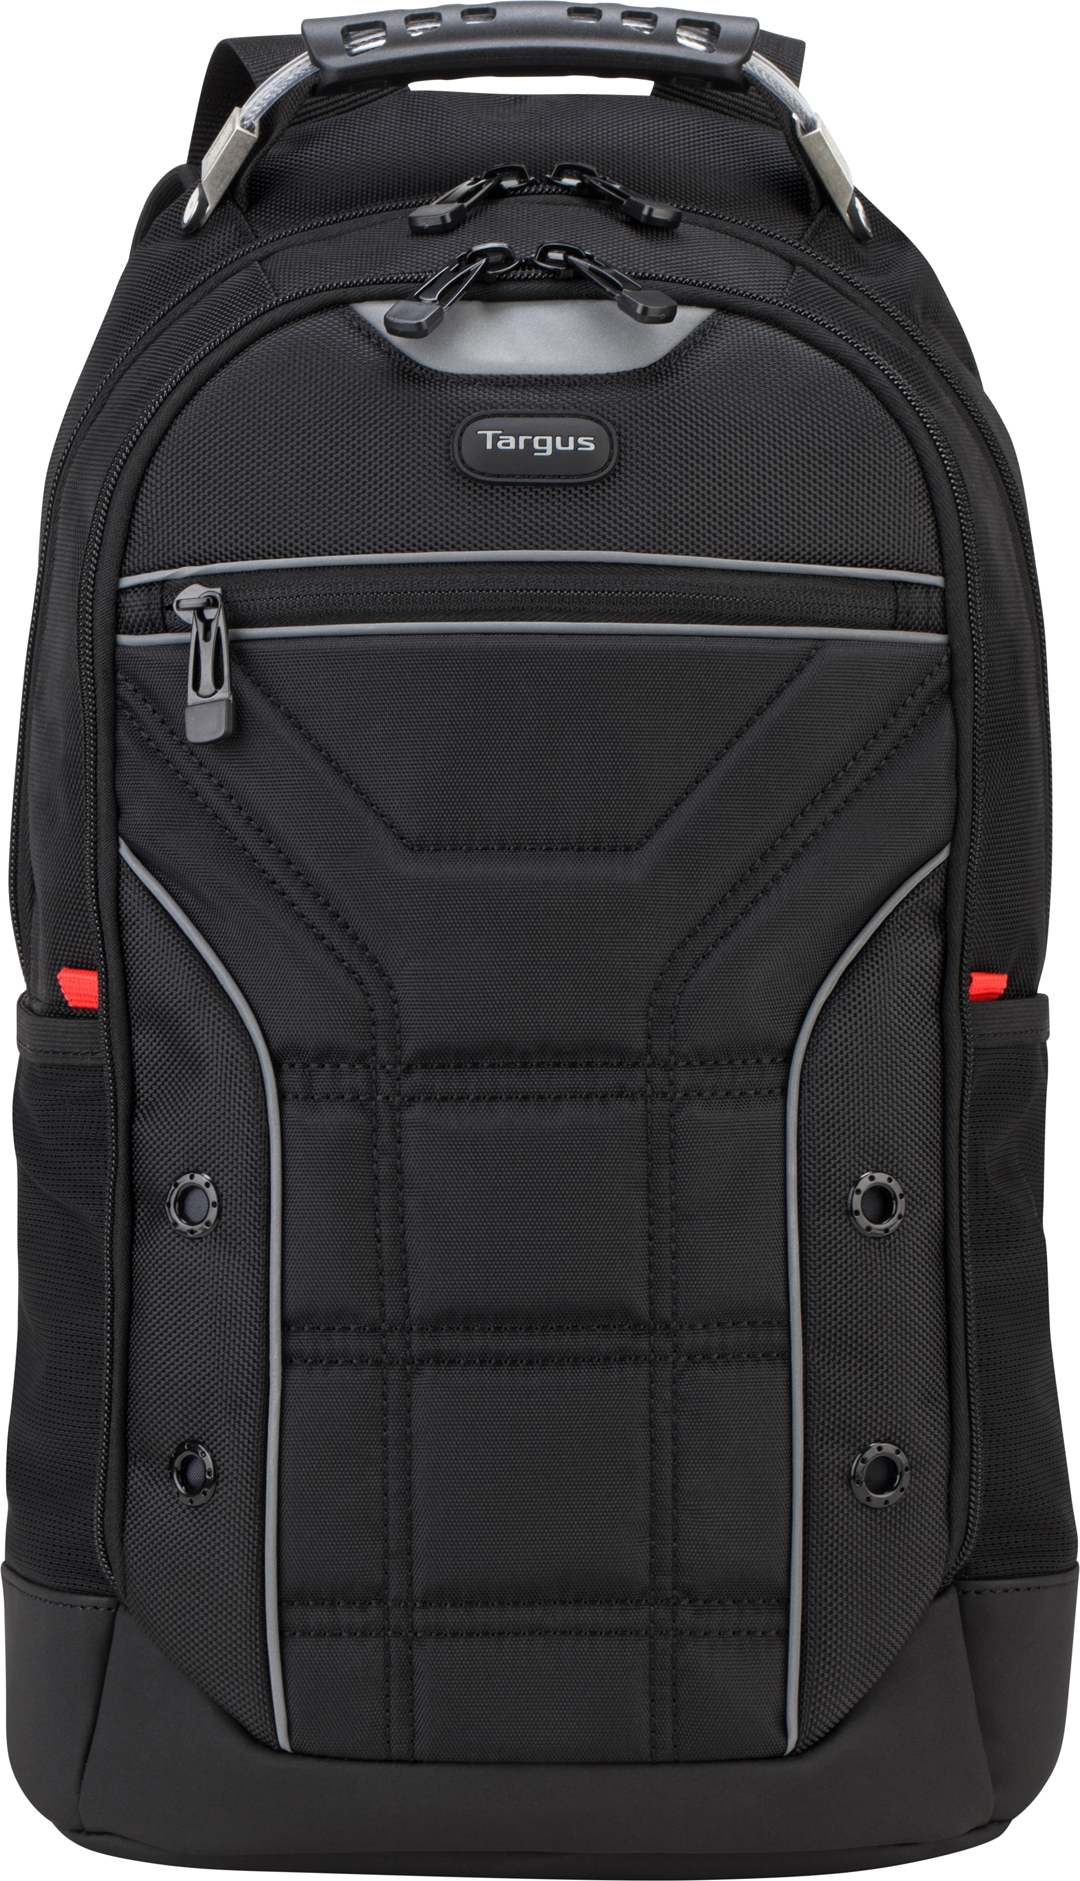 Laptop bags office depot - Just The Right Size